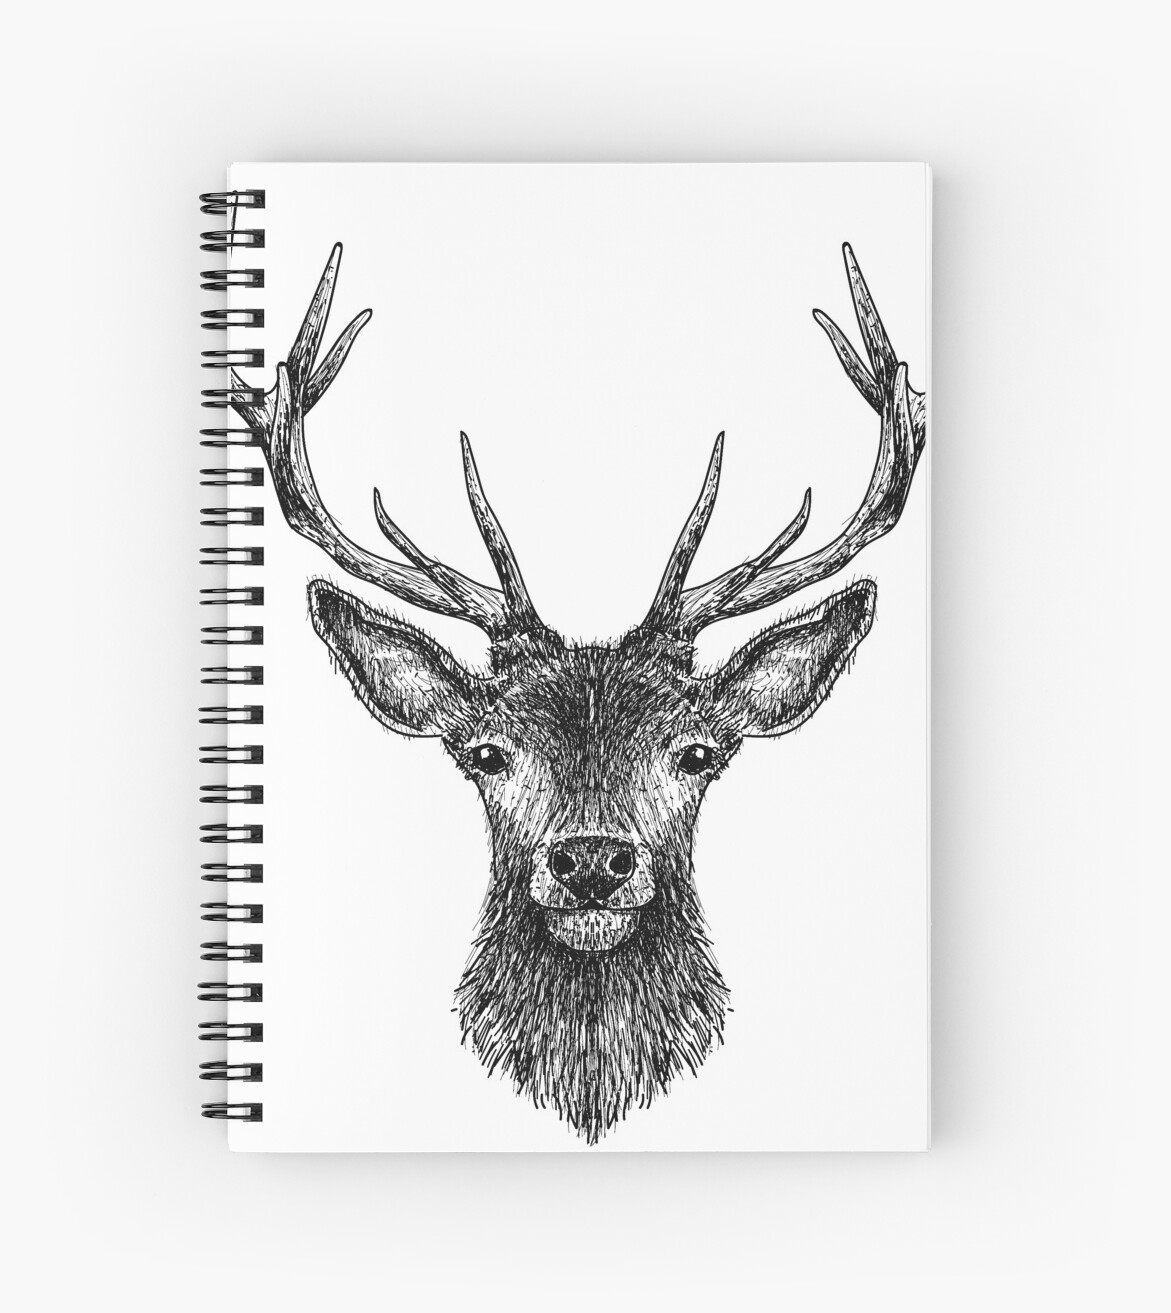 Deer head drawing black spiral notebook